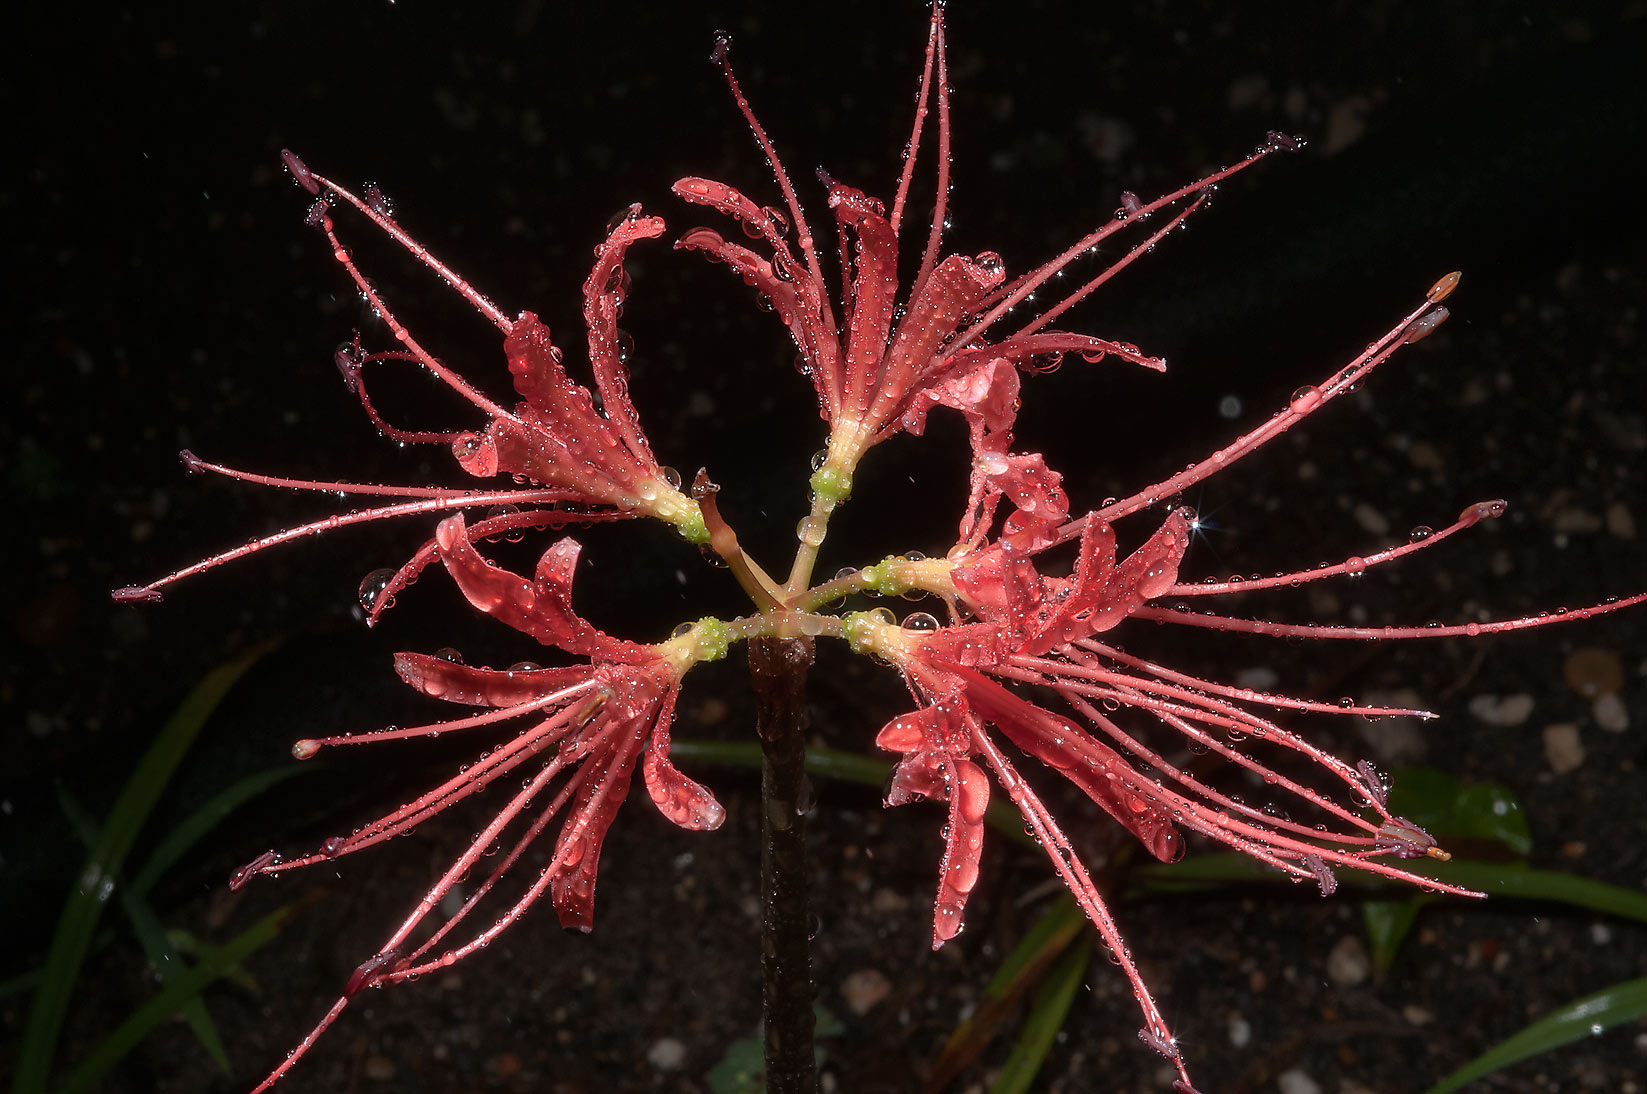 Red spider lily (Lycoris radiata) in TAMU...M University. College Station, Texas